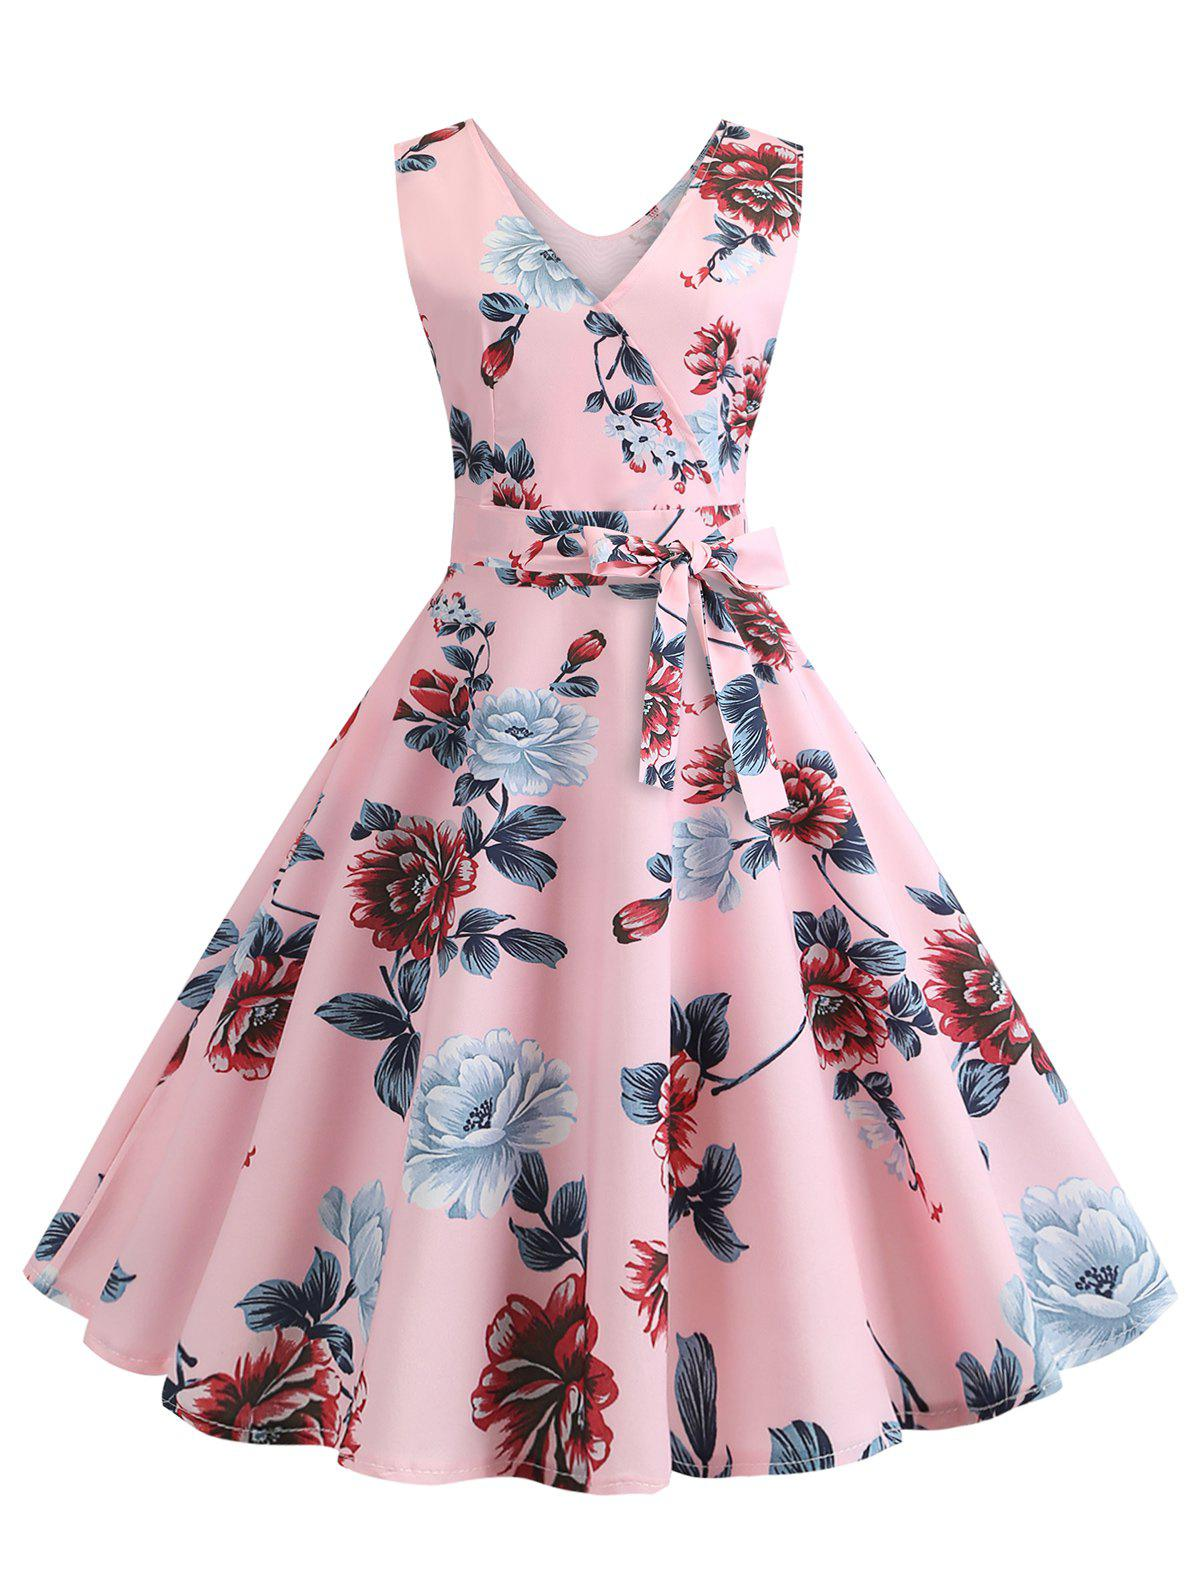 V Neck Floral Print Belted Flare Dress - PINK S